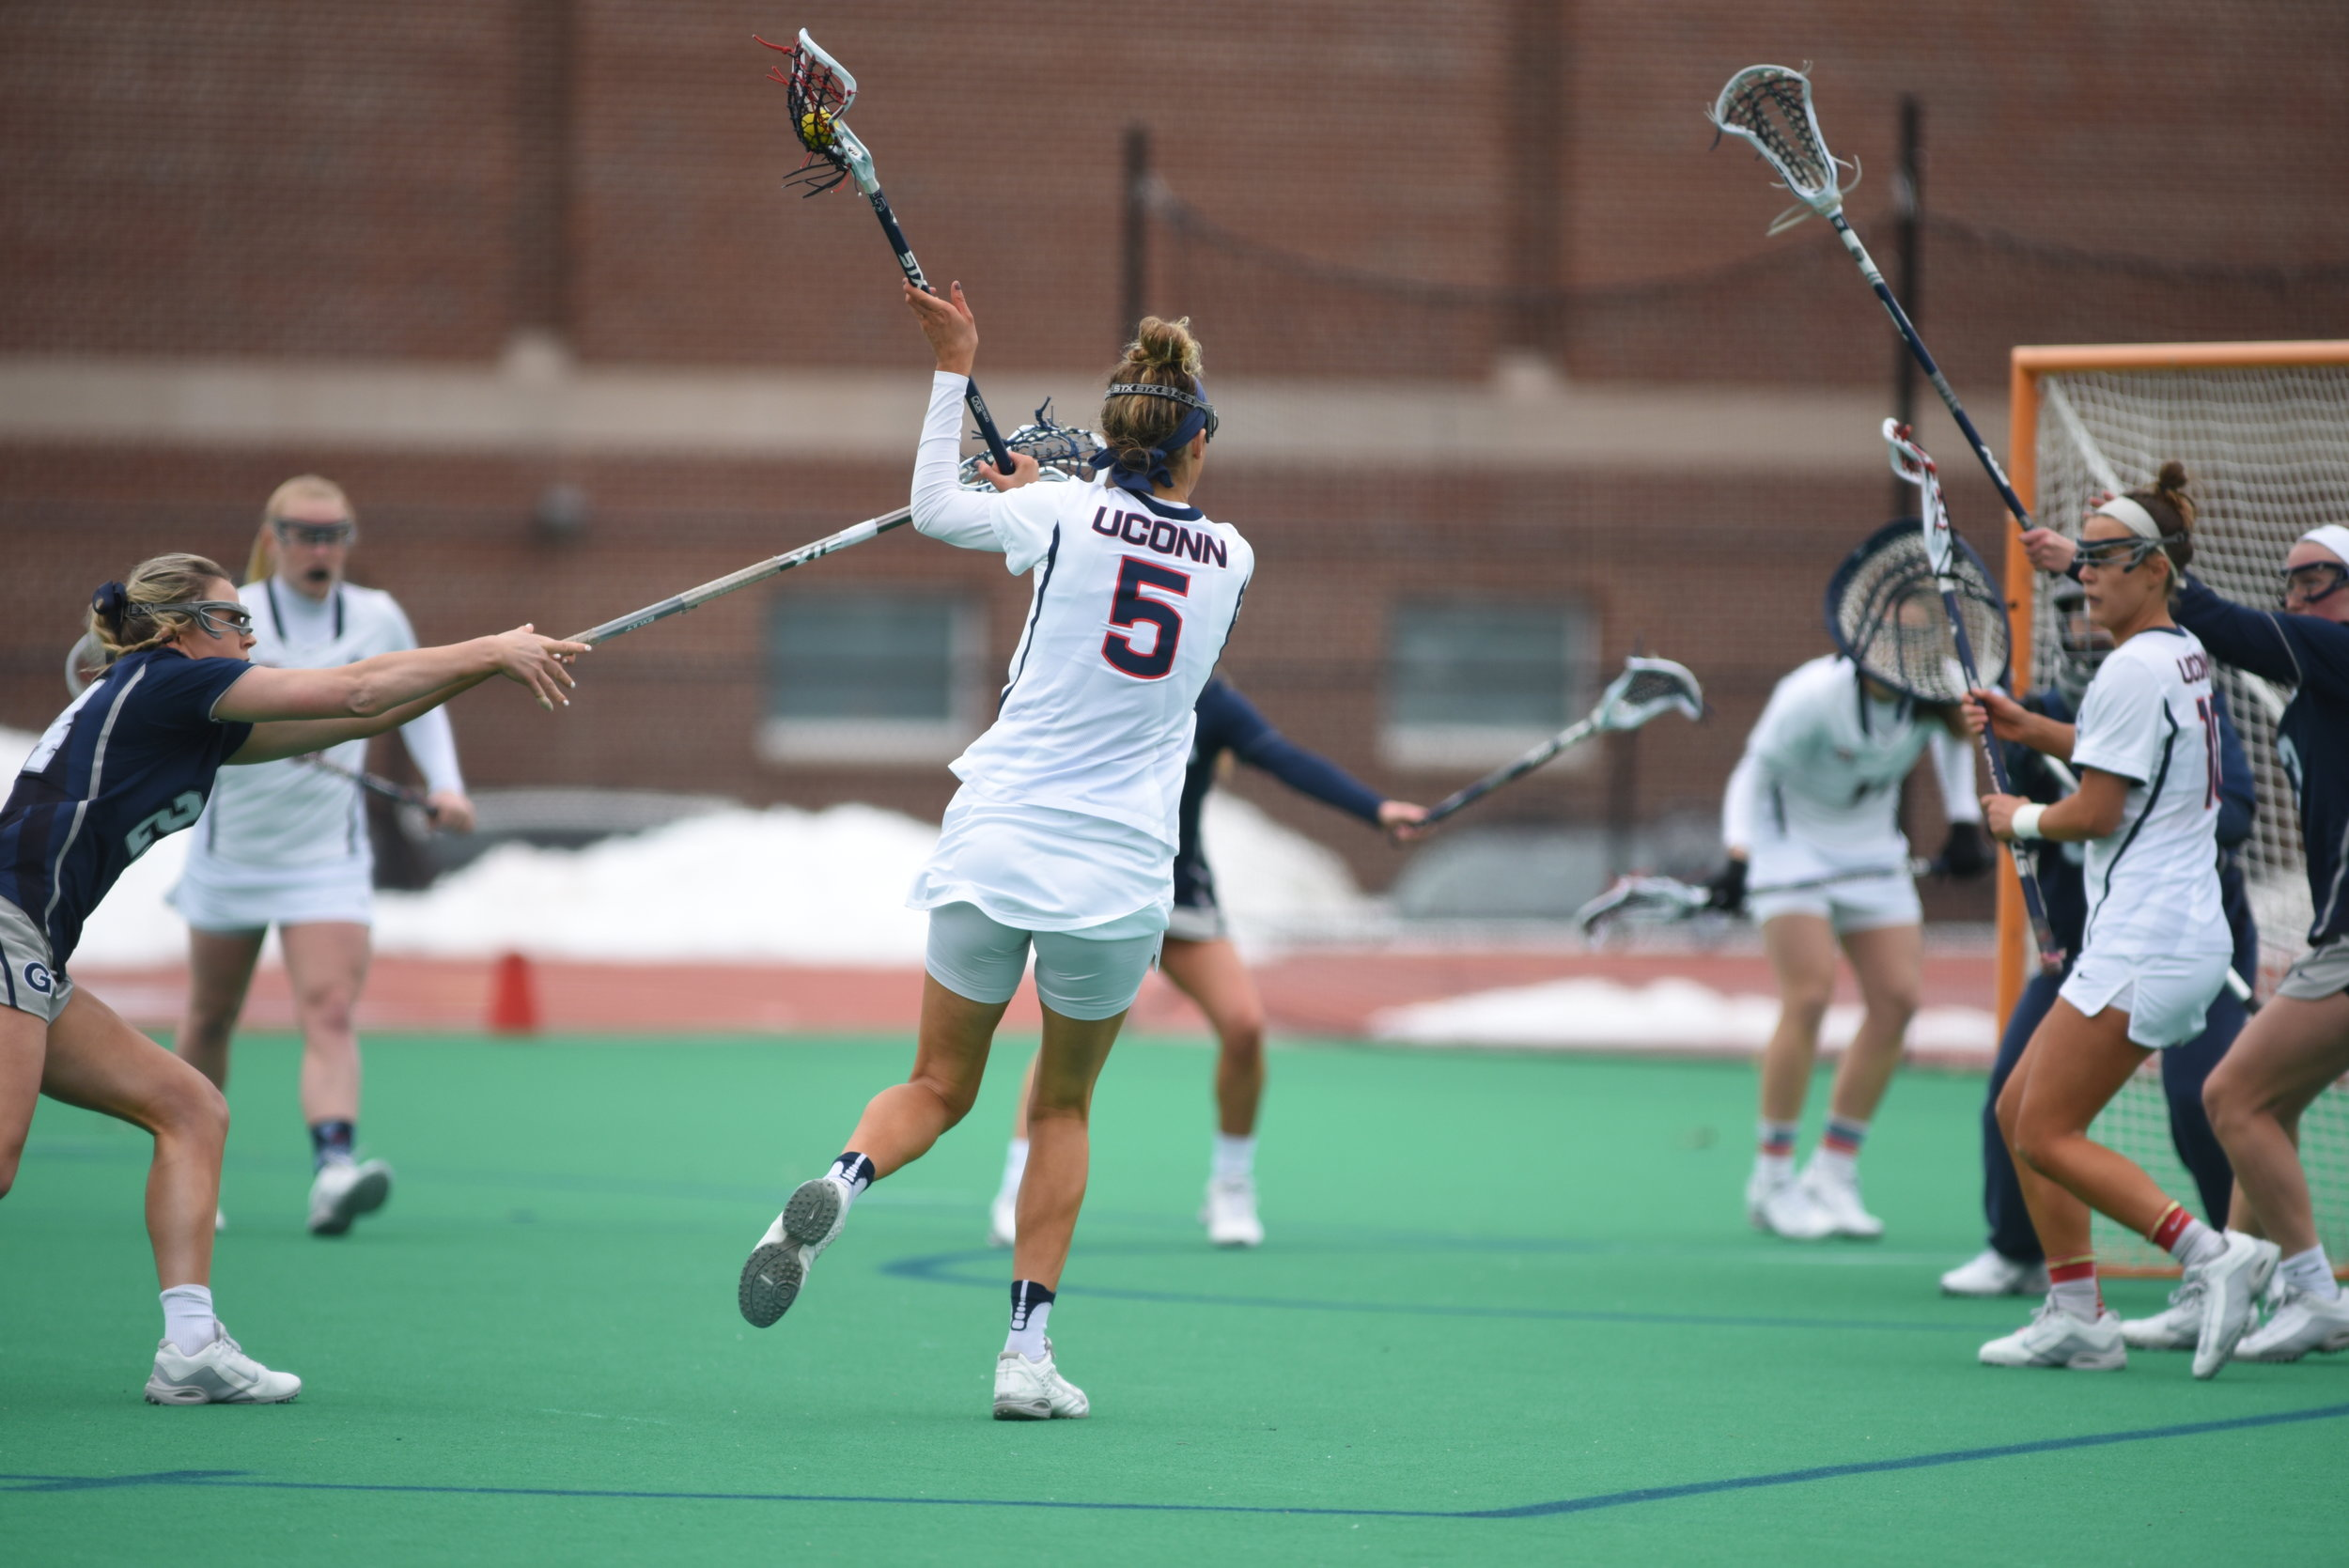 Molly O'Reilly (#5) fires a shot on net during UConn's game against Georgetown on March 25, 2017. The Huskies dropped the contest 14-6. (Charlotte Lao/The Daily Campus)